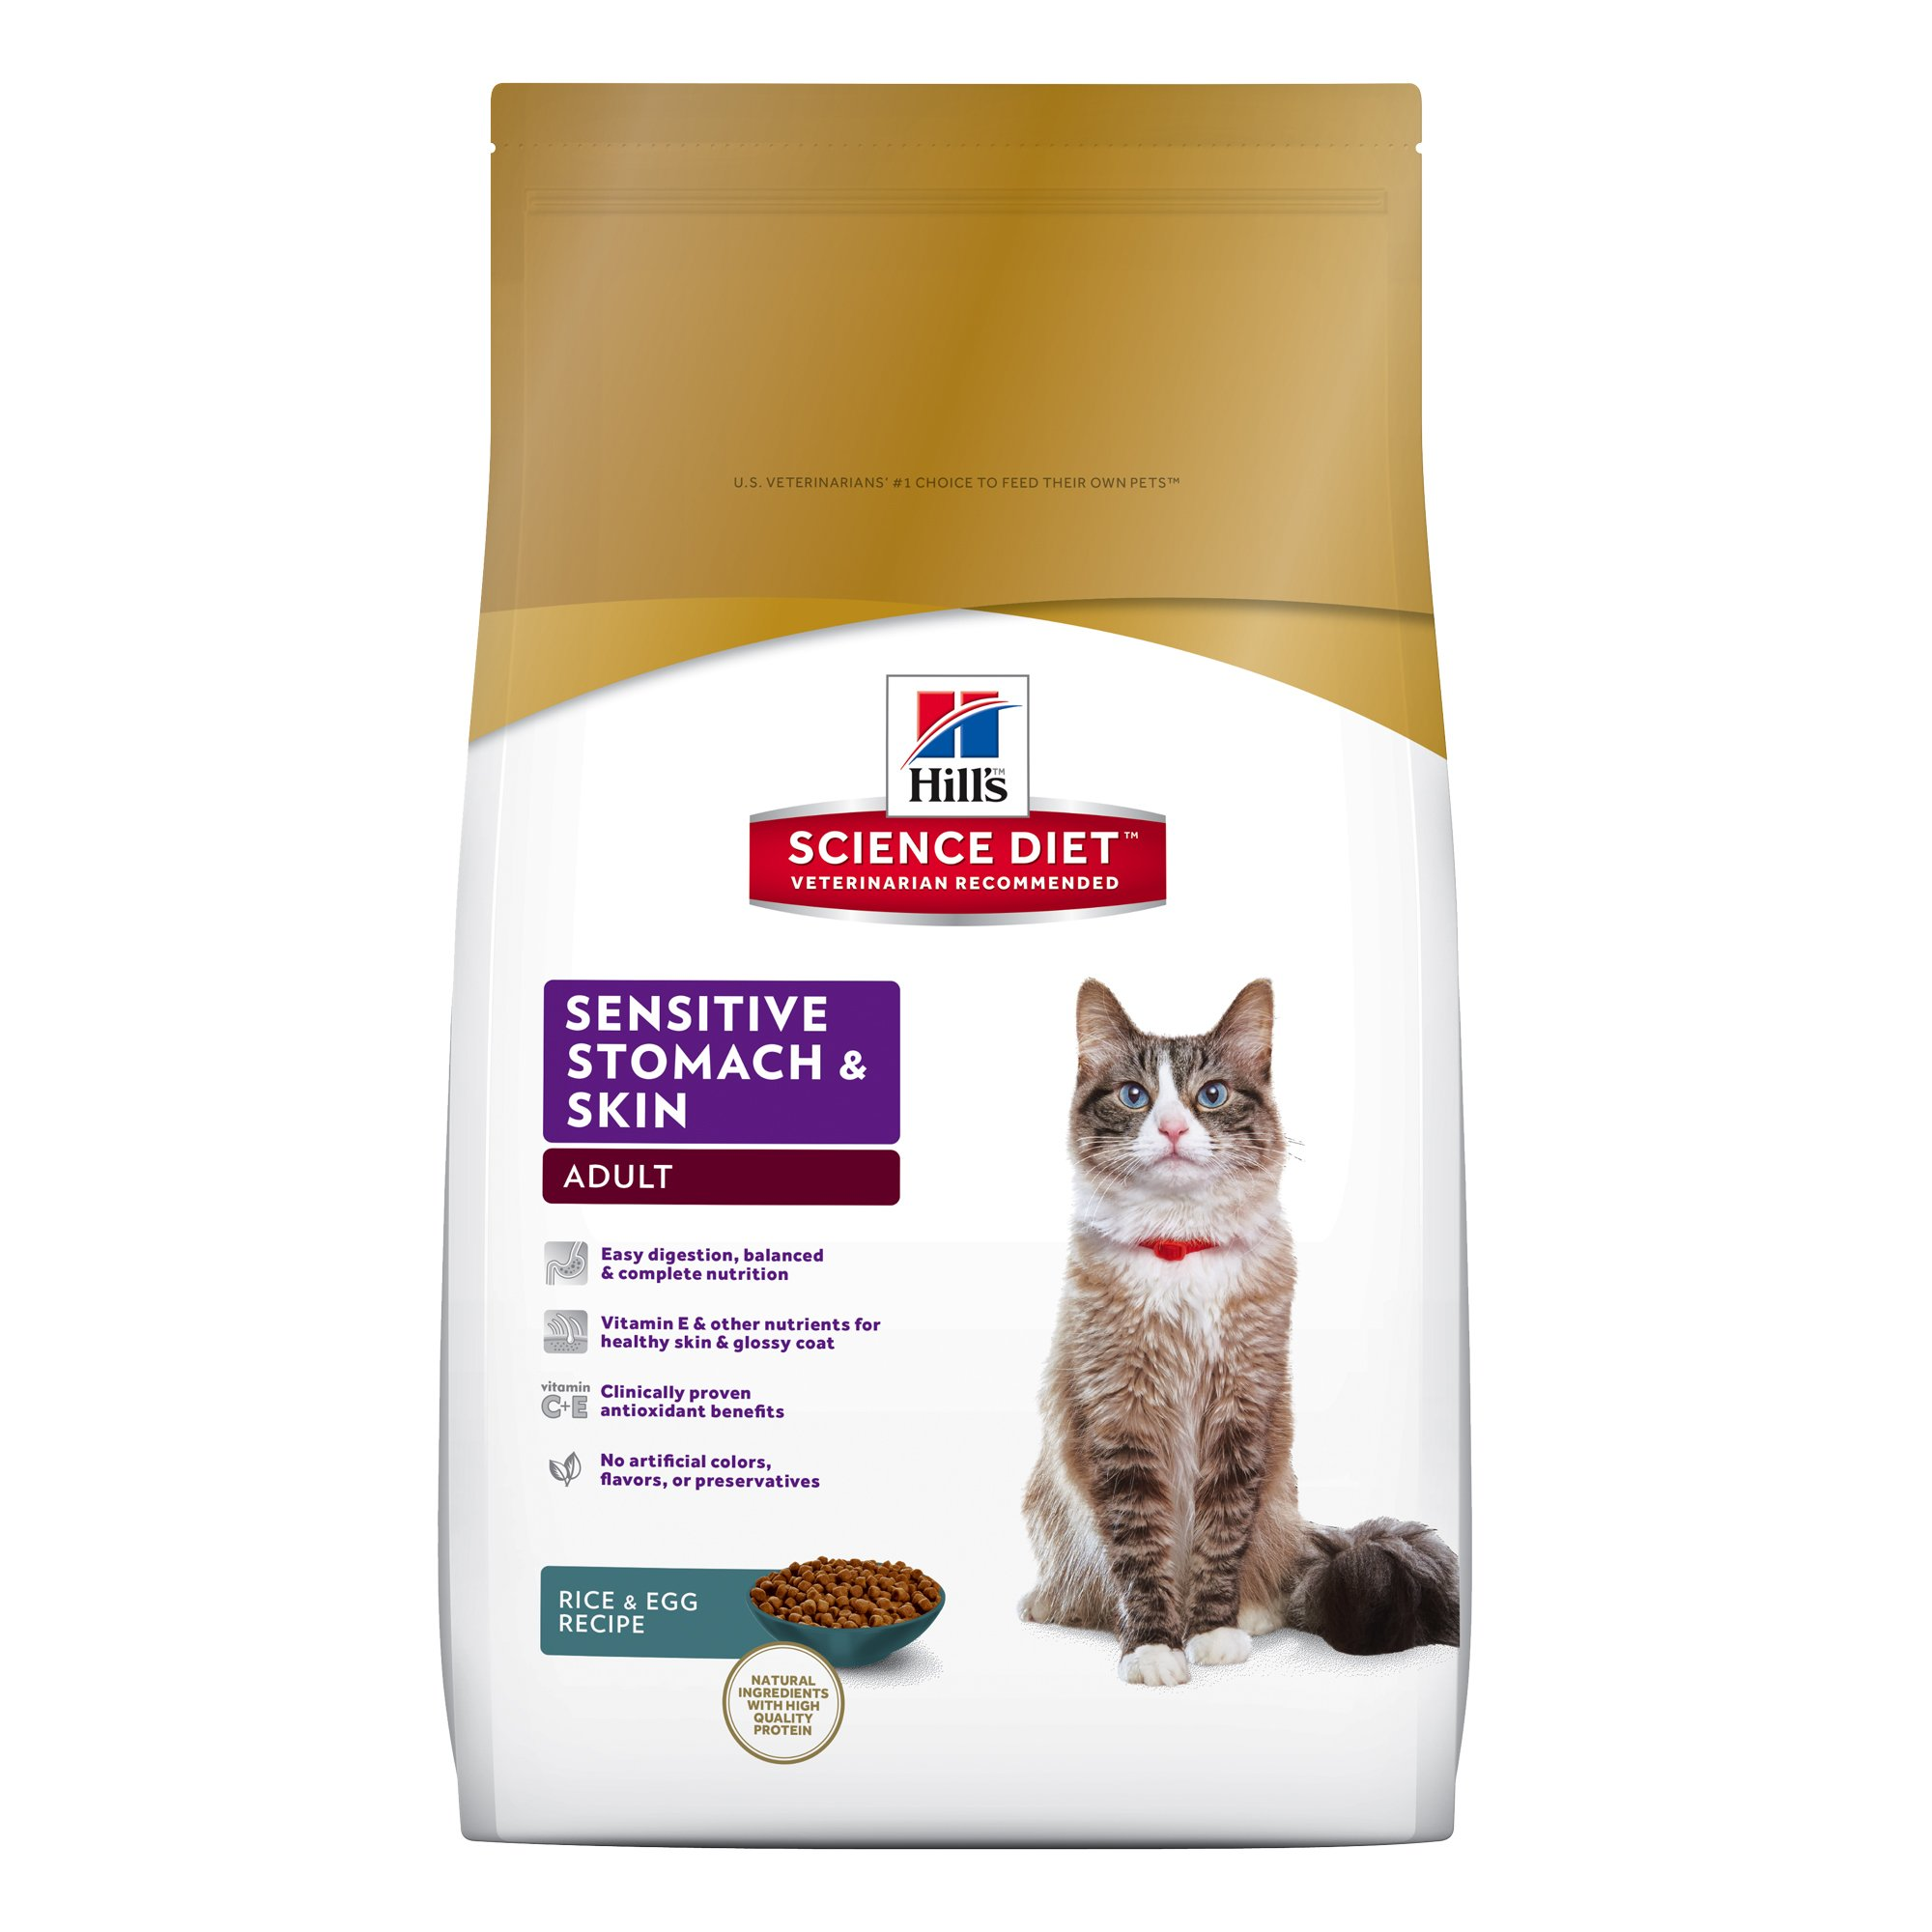 Hill's Science Diet Sensitive Stomach and Skin Dry Cat Food 15.5-Pound